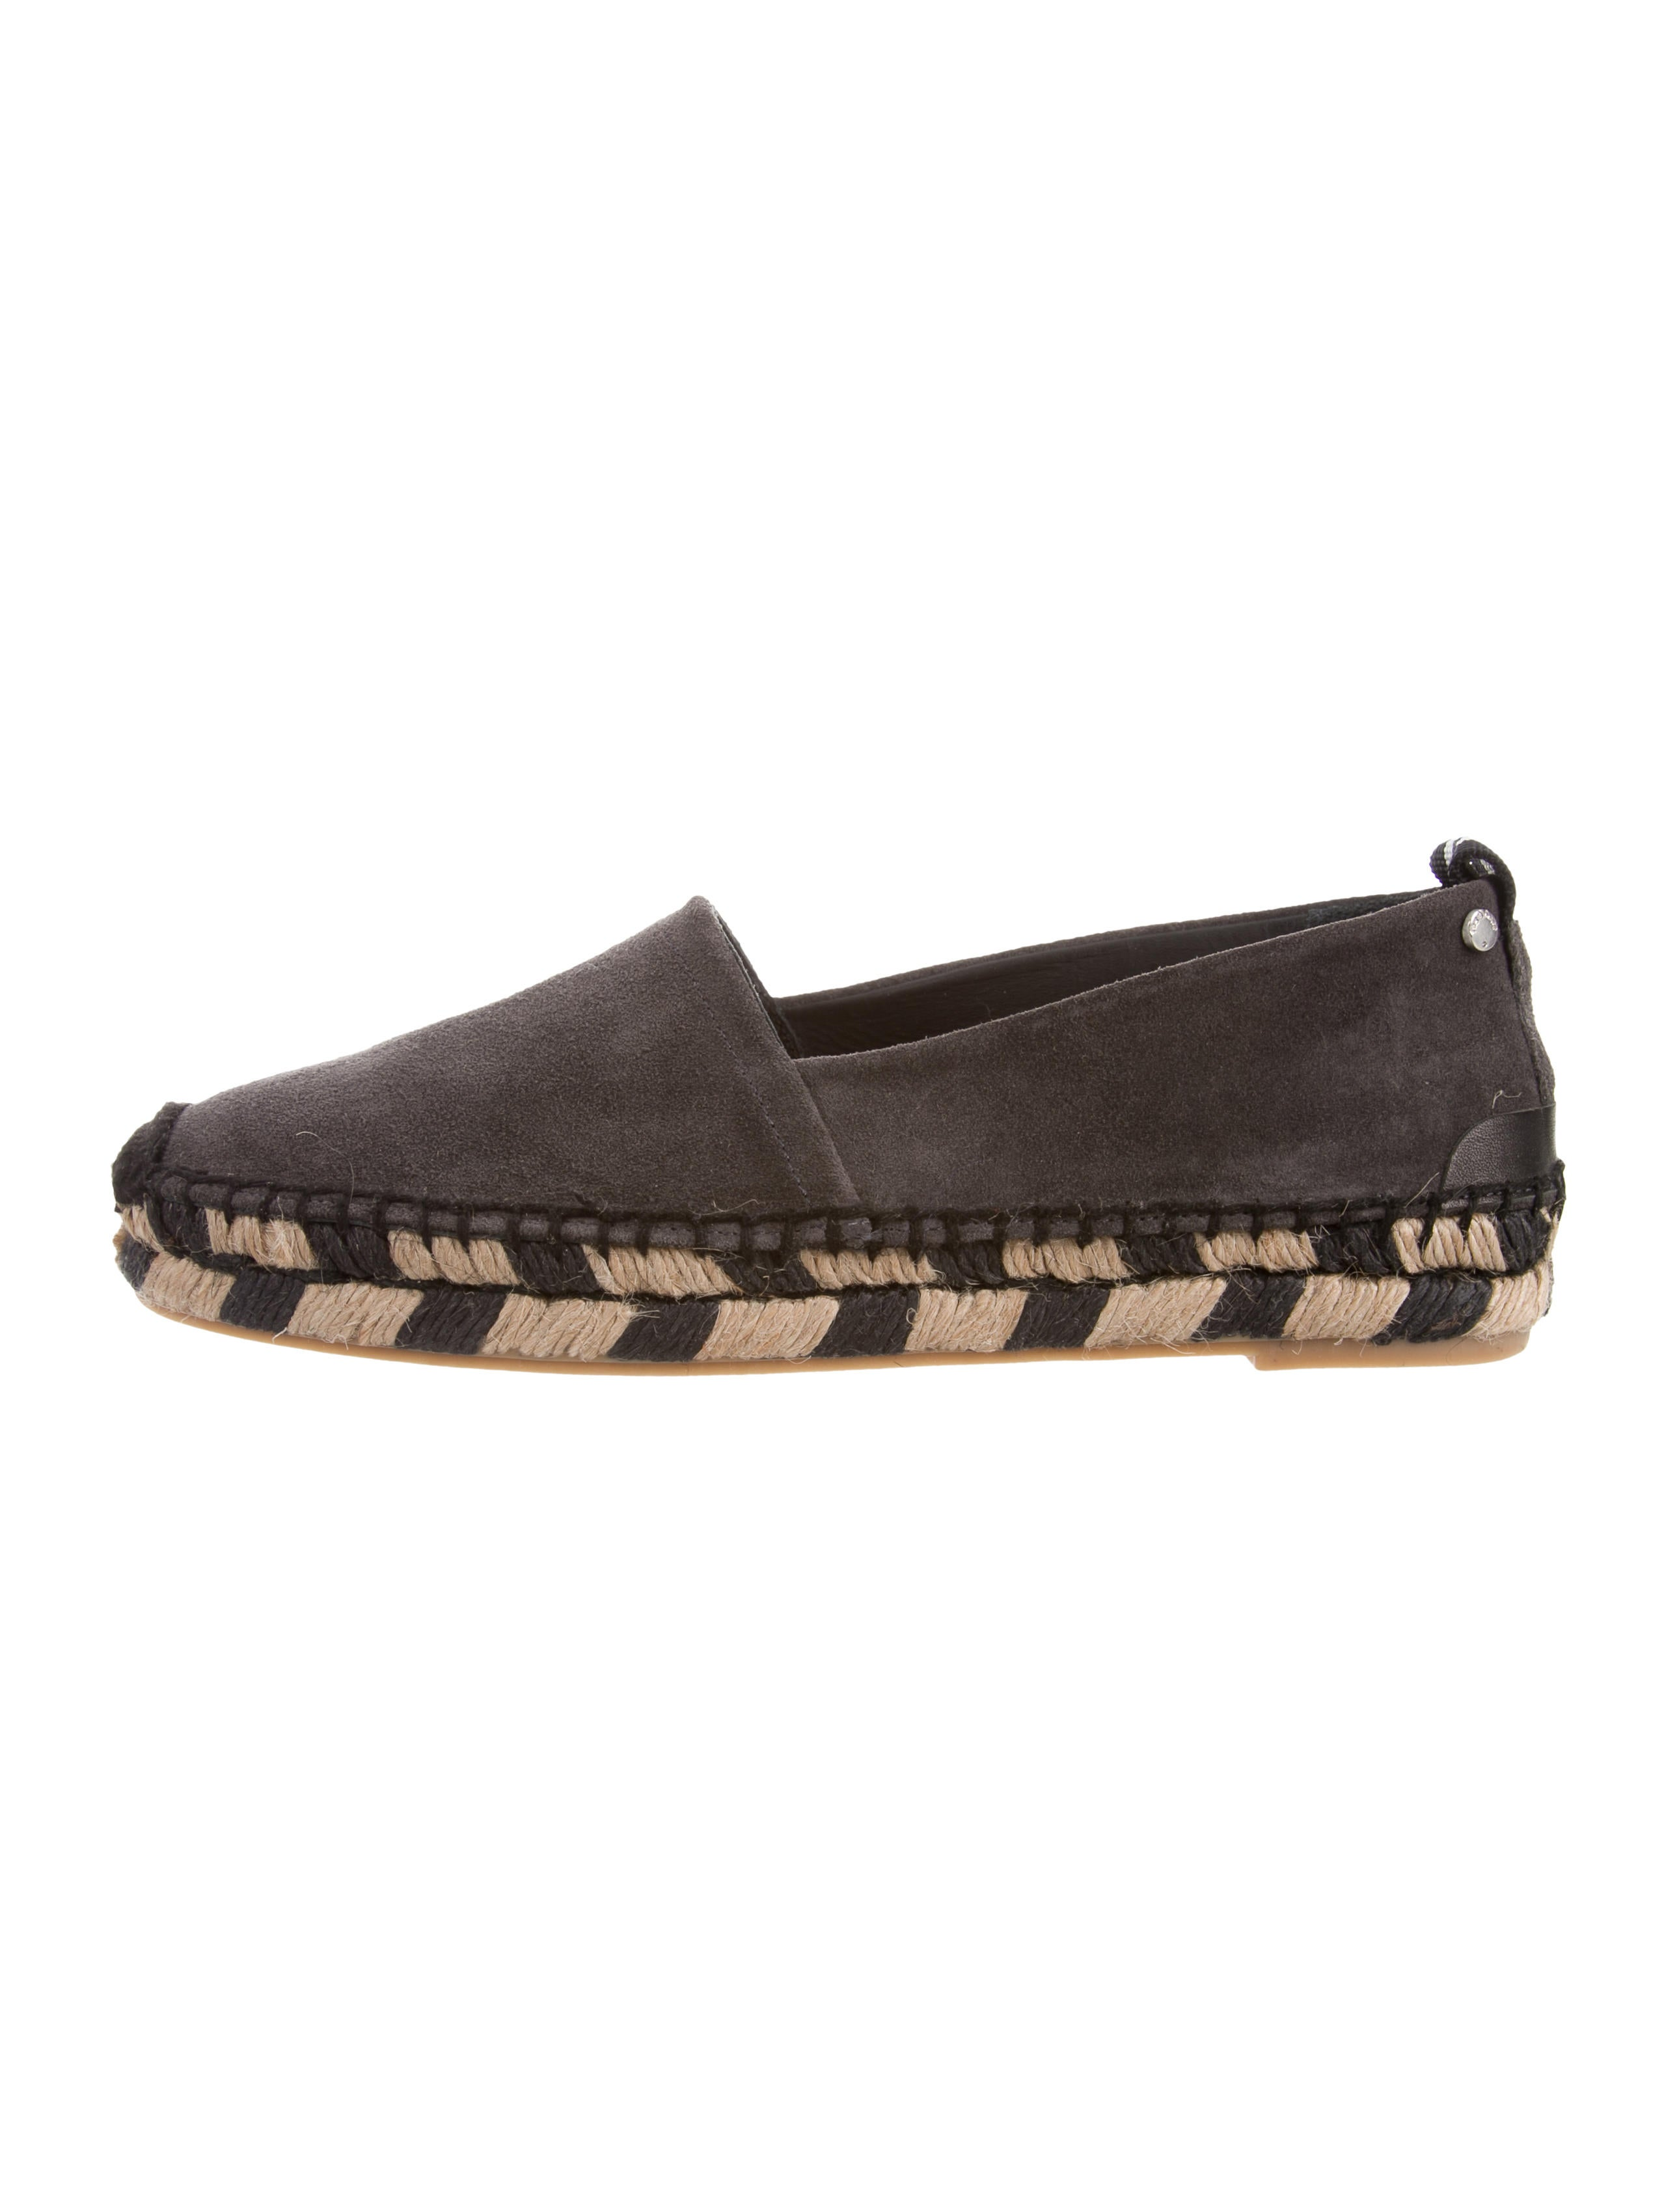 Rag & Bone Adria Round-Toe Espadrilles w/ Tags cheap sale recommend outlet amazing price sale under $60 very cheap price 9BBQv6tn